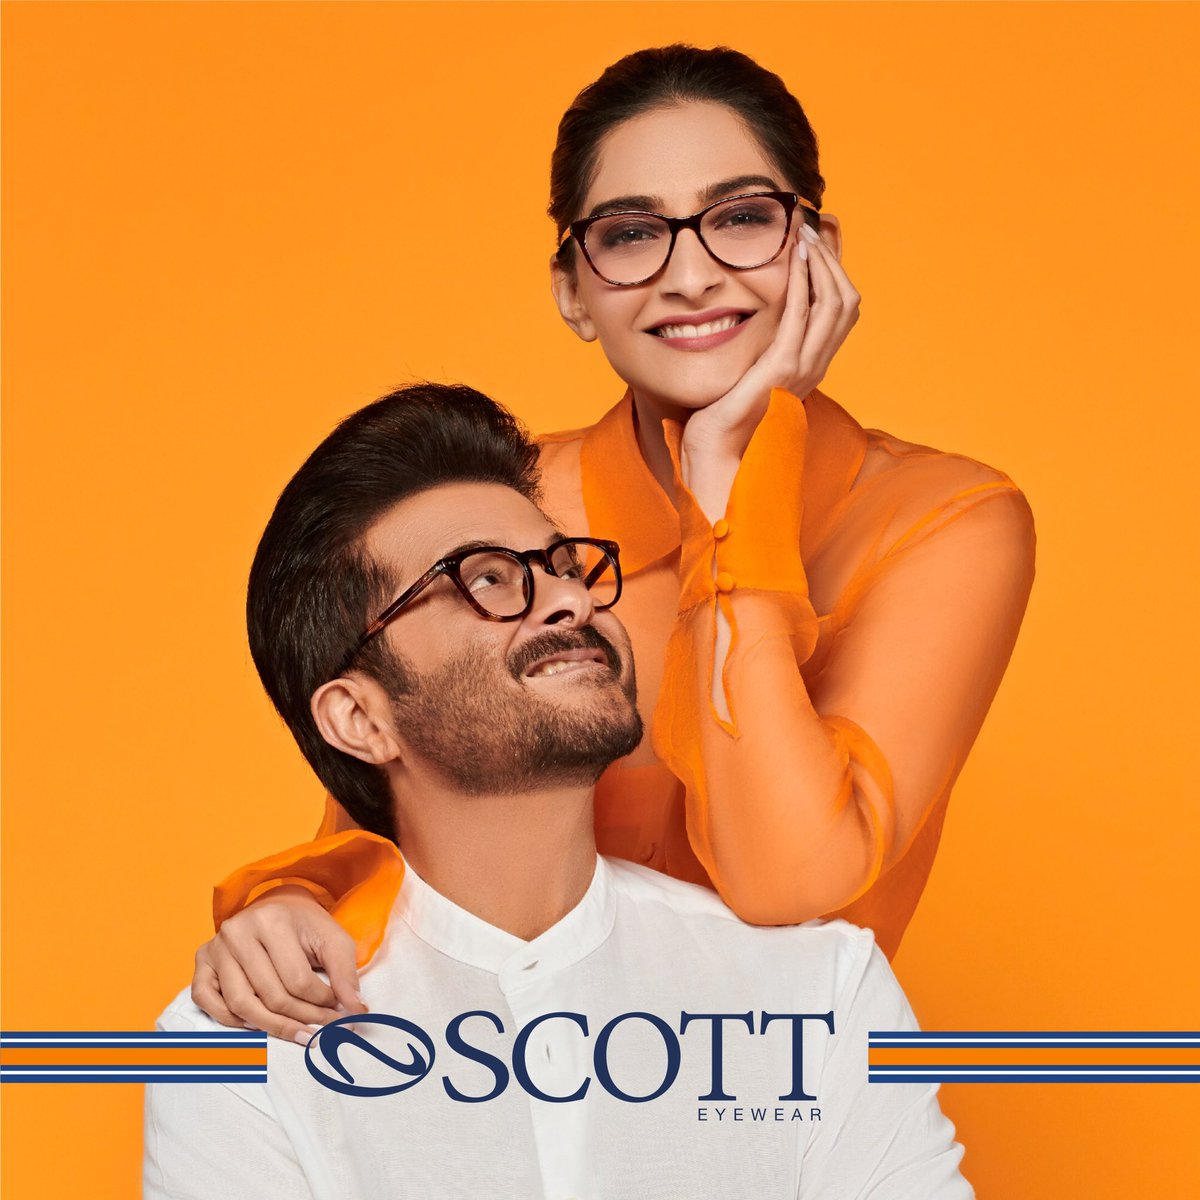 Super excited to be here once again with my #SignatureLine @ScottEyewear  Glamourous styles in the most vibrant and cool colours. Stay on top of fashion with me and check out the new collection for a whole new YOU! #scotteyewearxaksk #scotteyewearsignaturecollection #scotteyewear